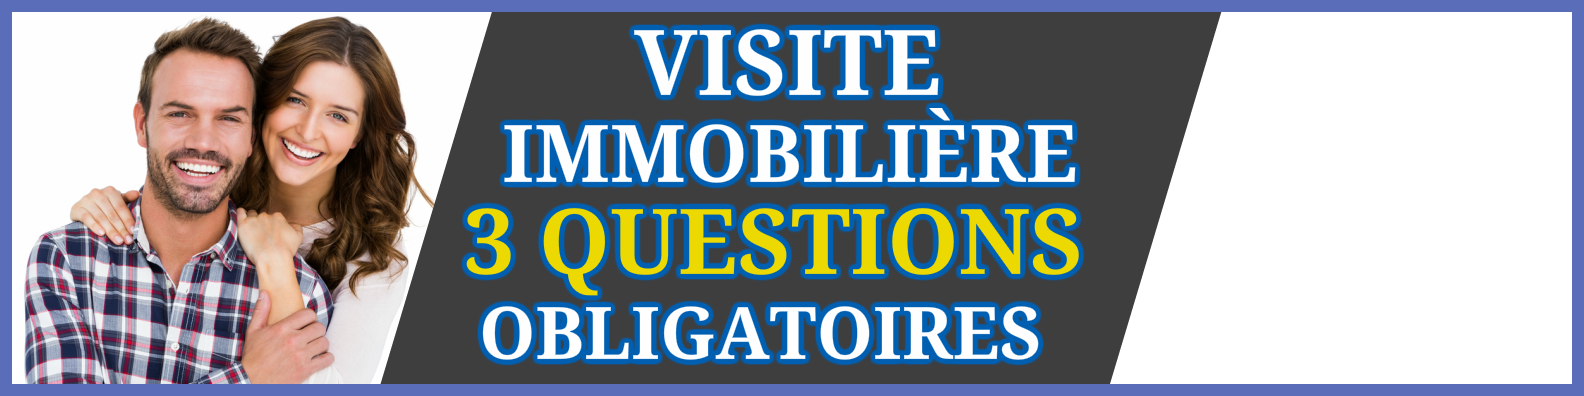 les 3 questions obligatoires poser avant de commencer ta visite immobili re. Black Bedroom Furniture Sets. Home Design Ideas